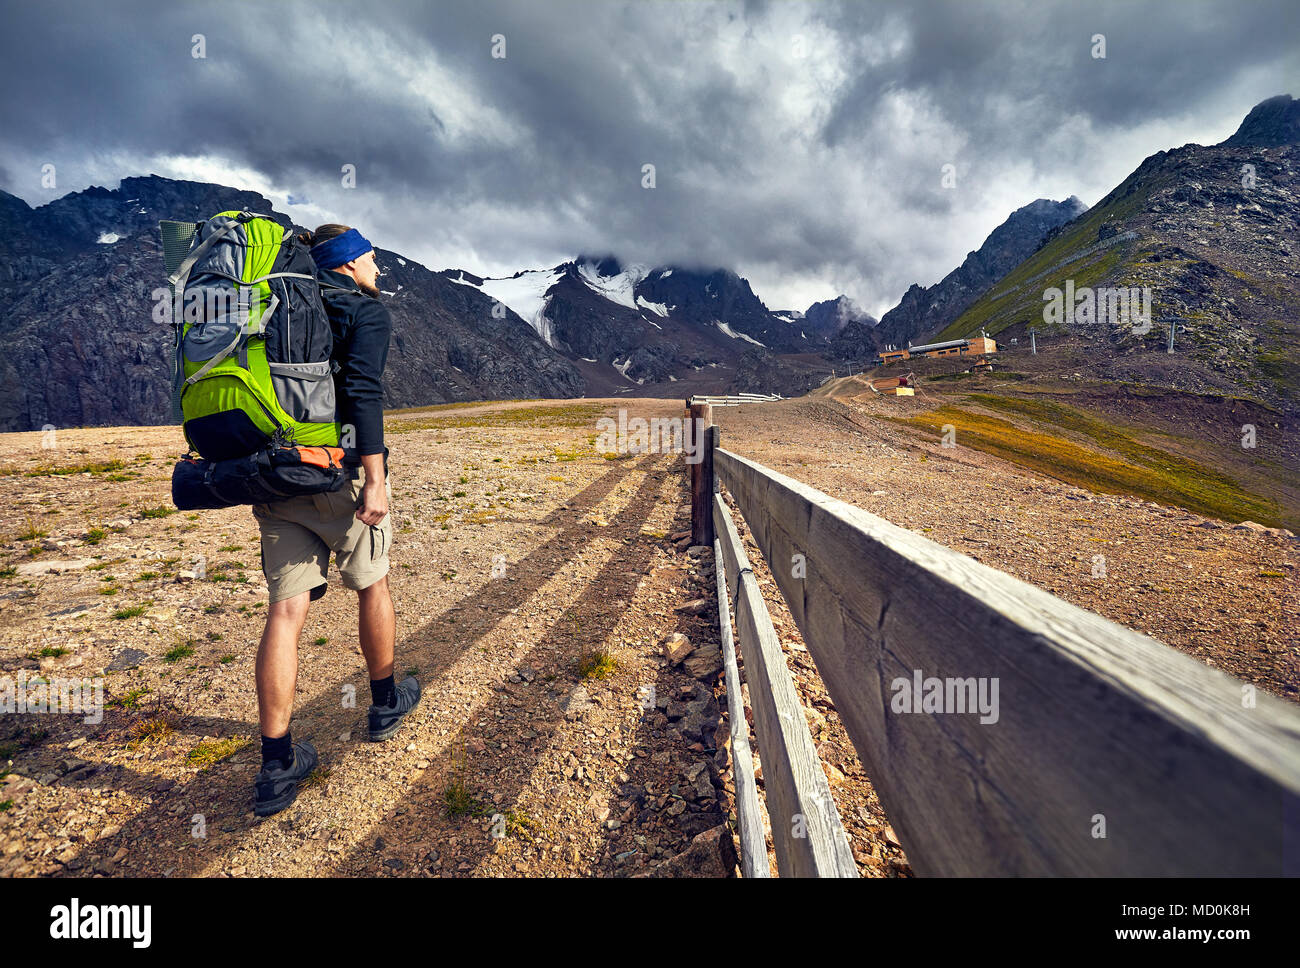 Hiker in with big green backpack walking to the snowy mountains at overcast dark sky background in Shymbulak Ski Resort in Kazakhstan - Stock Image